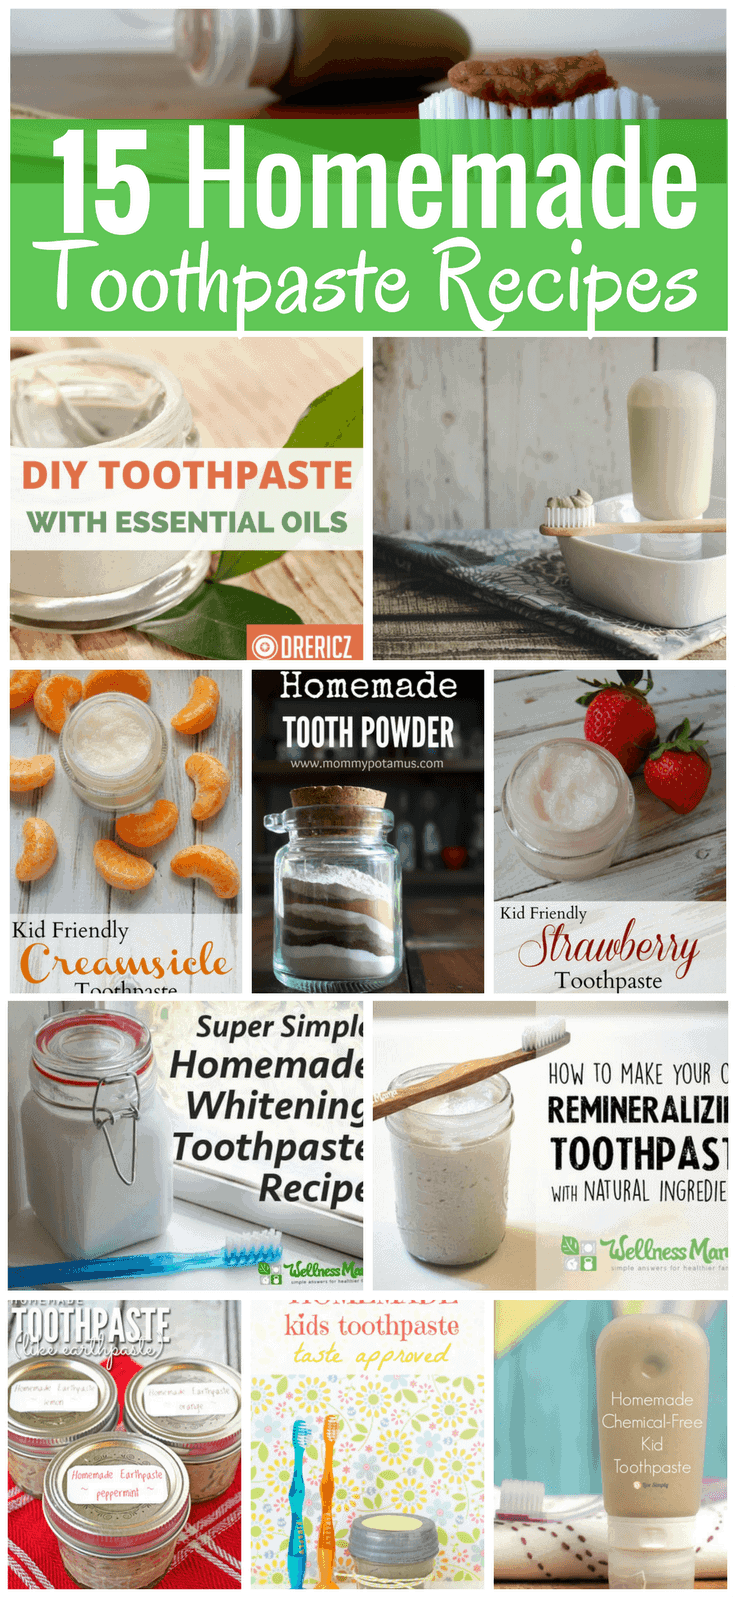 15 Homemade Toothpaste Recipes - Simple